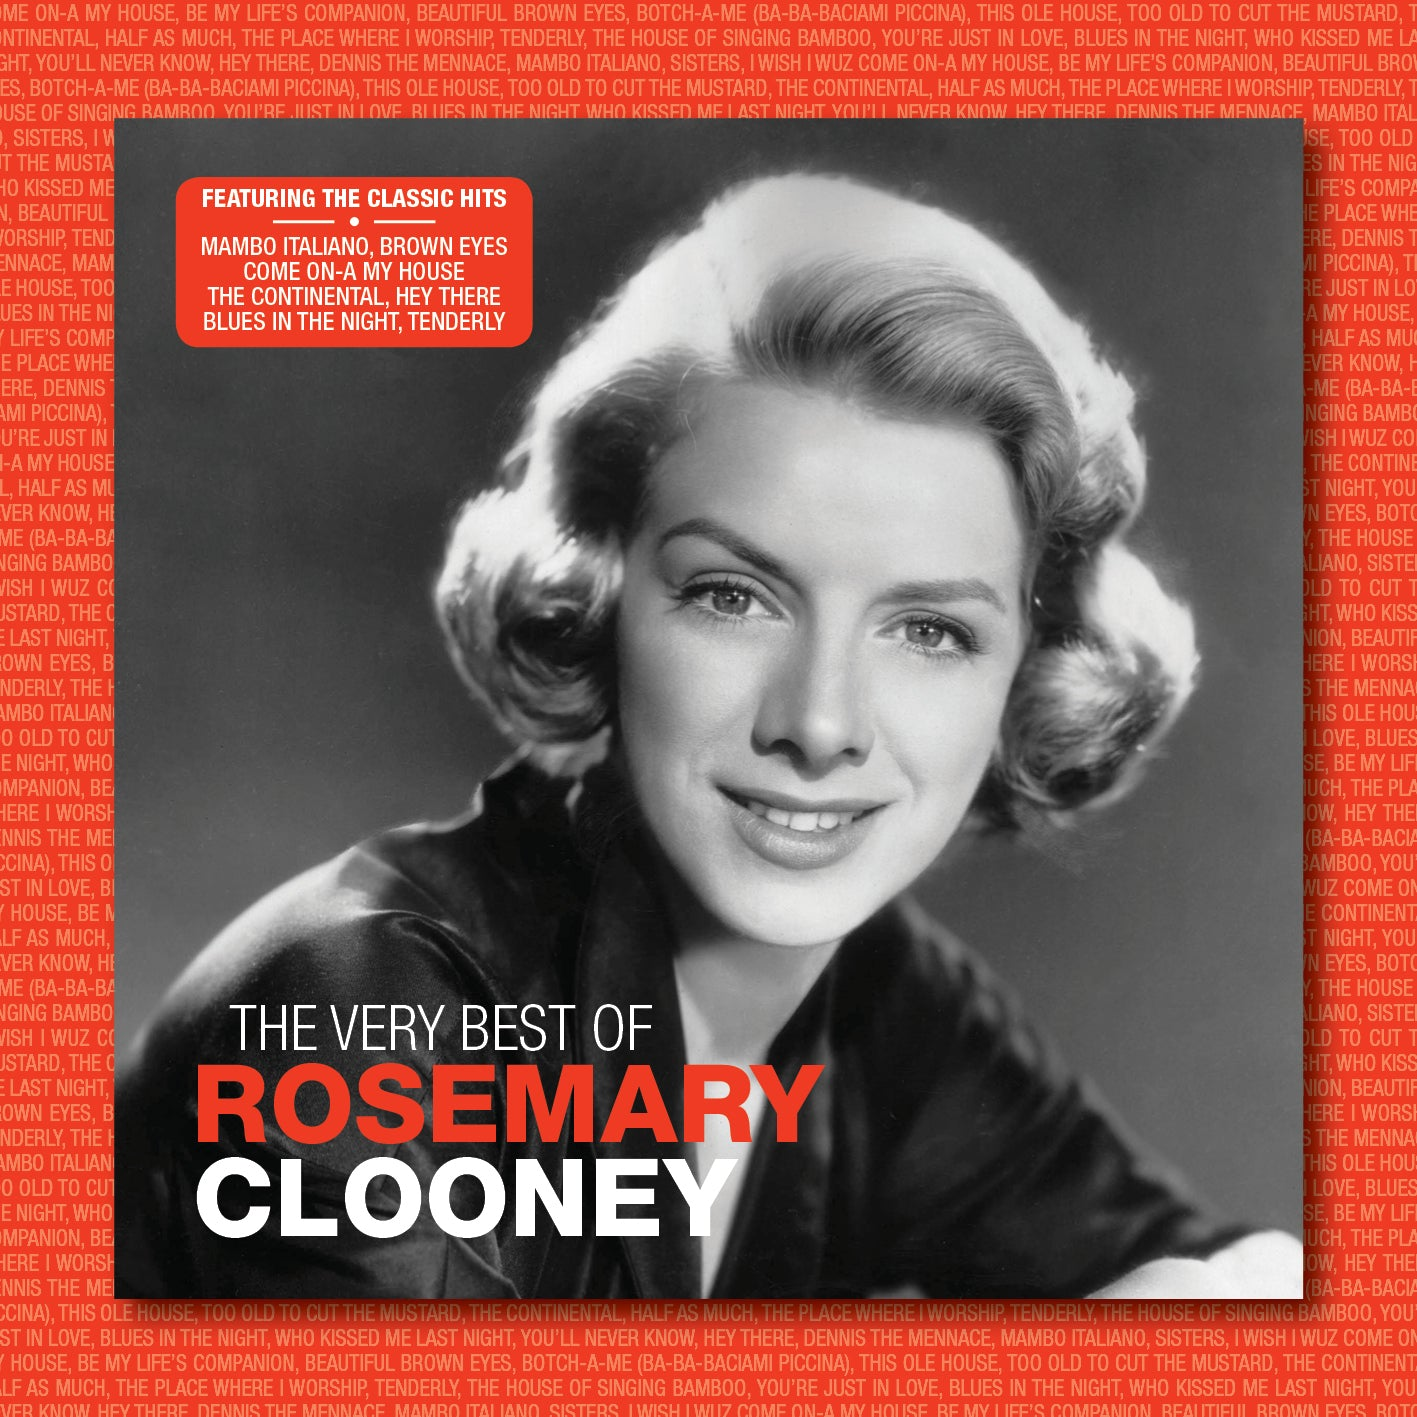 FANFARE166 - ROSEMARY CLOONEY - THE VERY